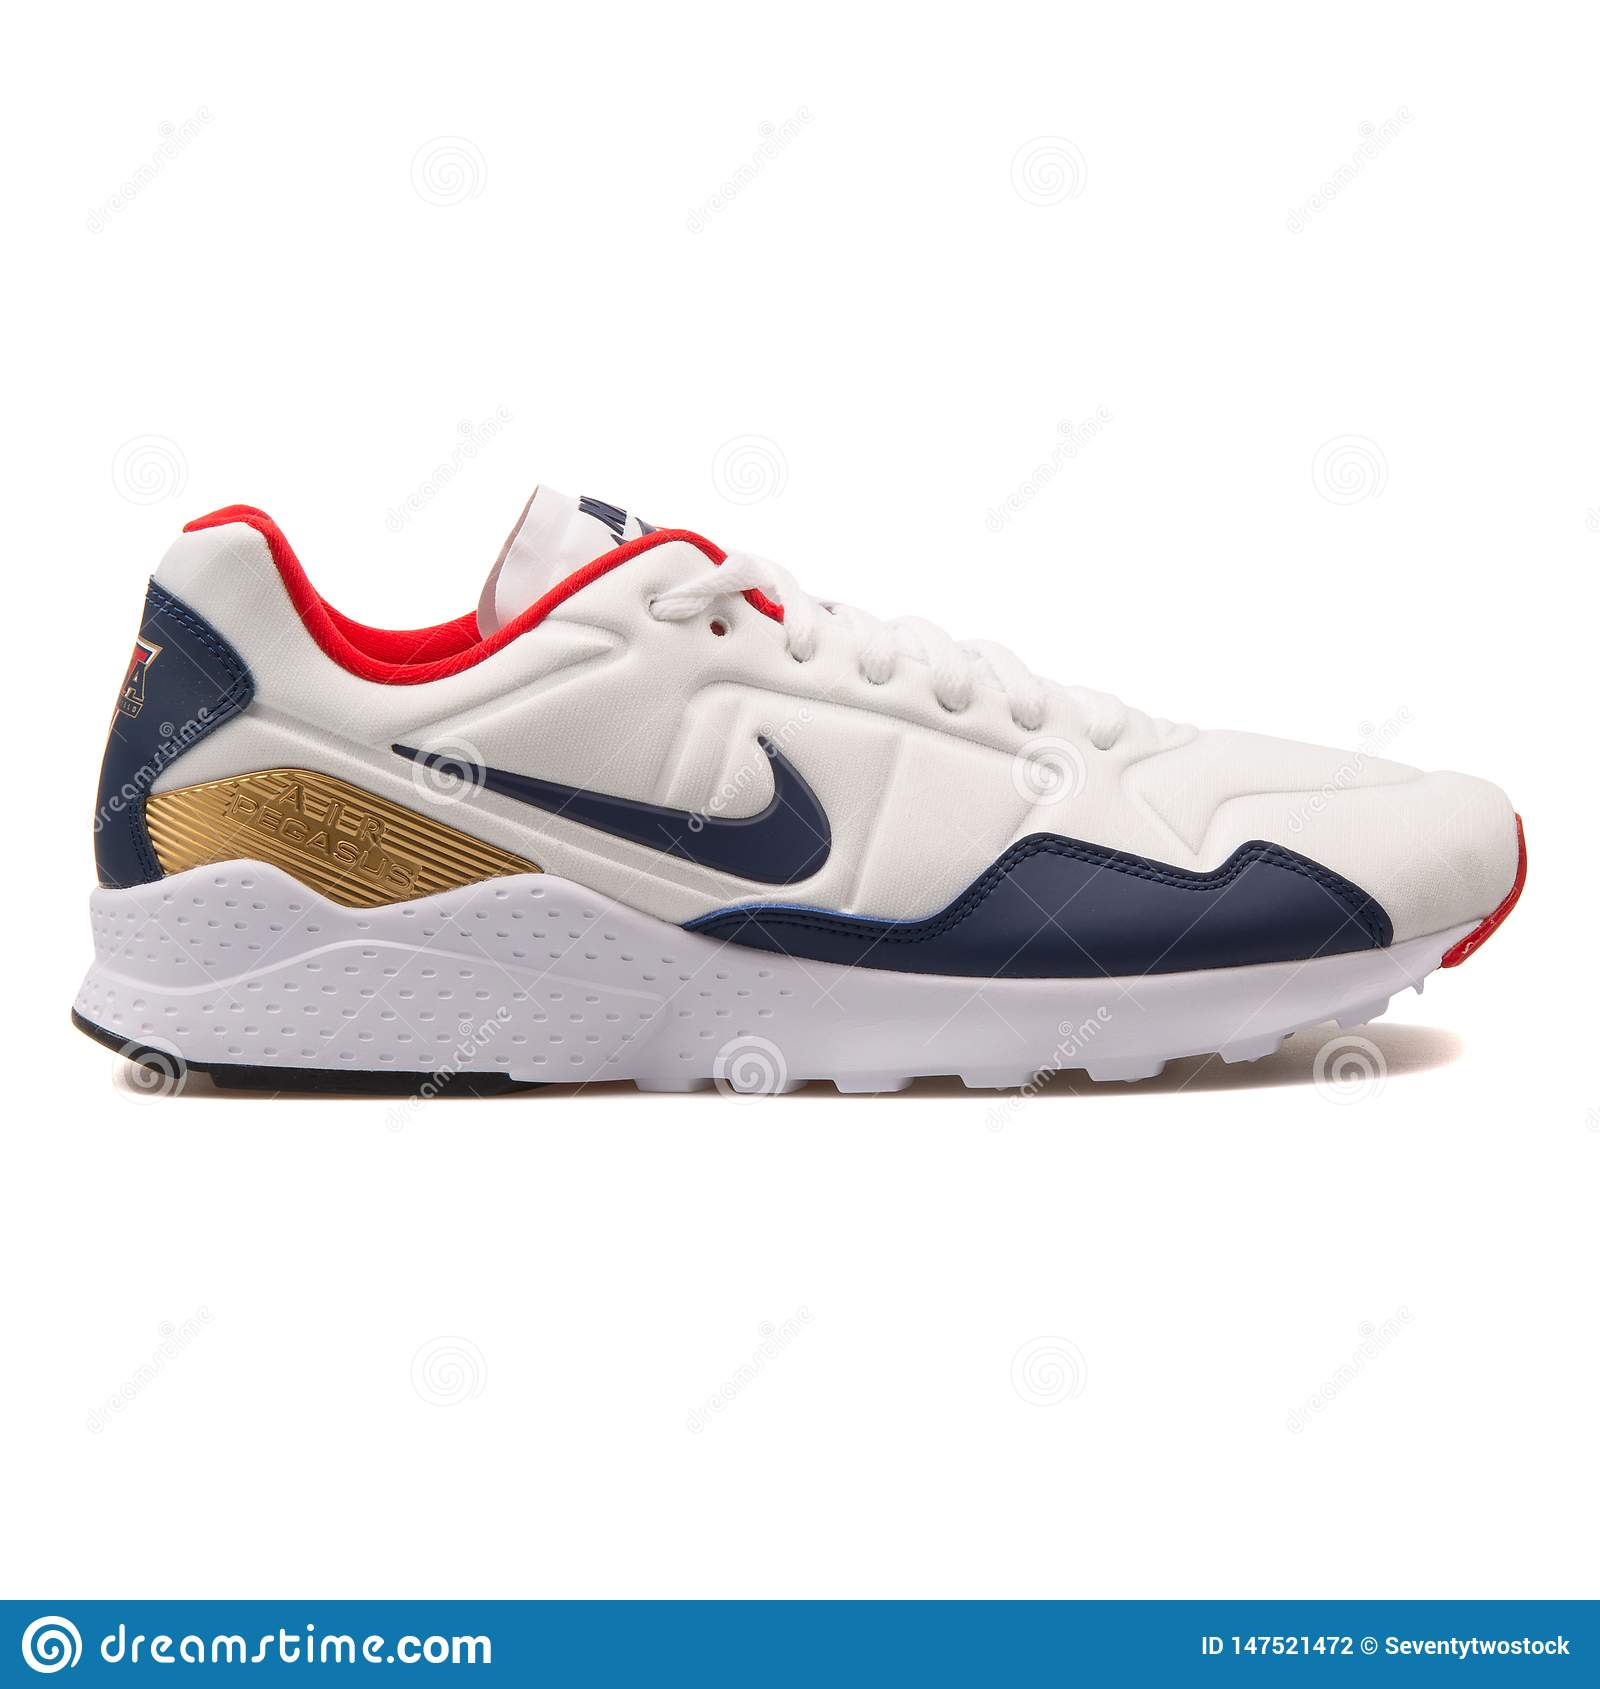 Procesando barajar Para construir  Nike Air Zoom Pegasus 92 White, Blue, Gold And Red Sneaker Editorial  Photography - Image of product, fitness: 147521472